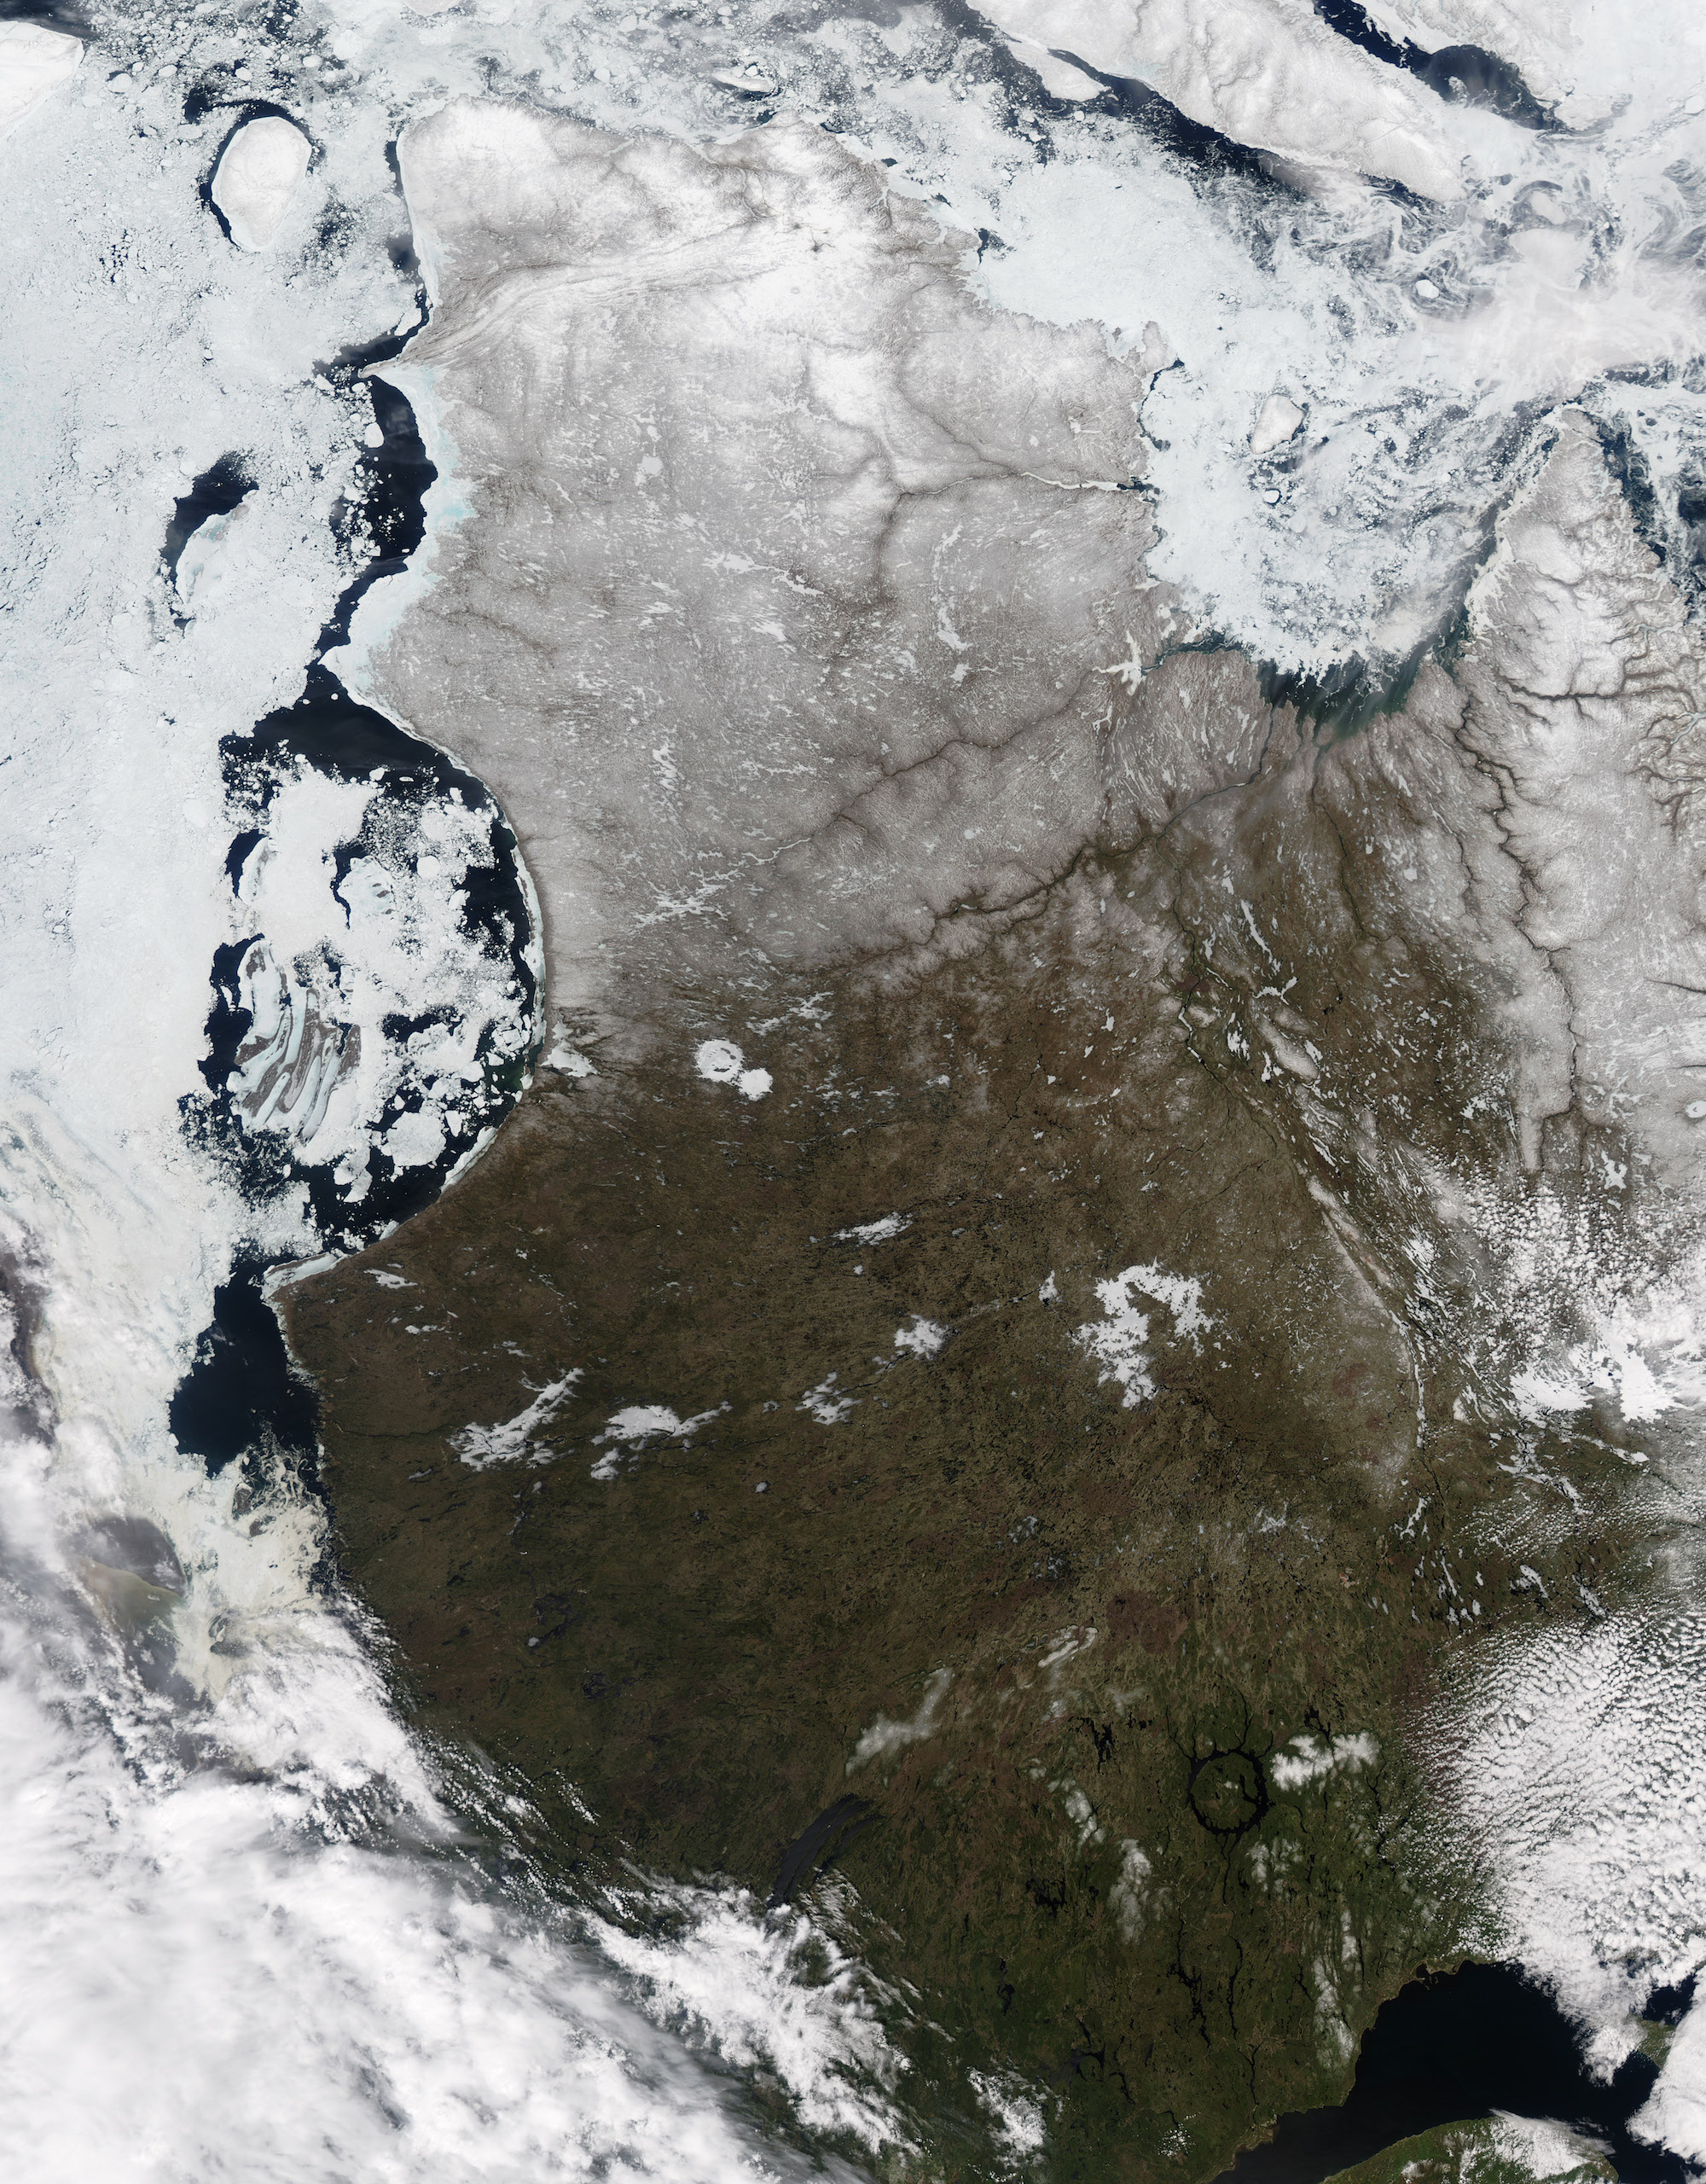 Today's Image of the Day comes thanks to the NASA Earth Observatory and features a look at sea ice in the Hudson Bay of northern Canada.